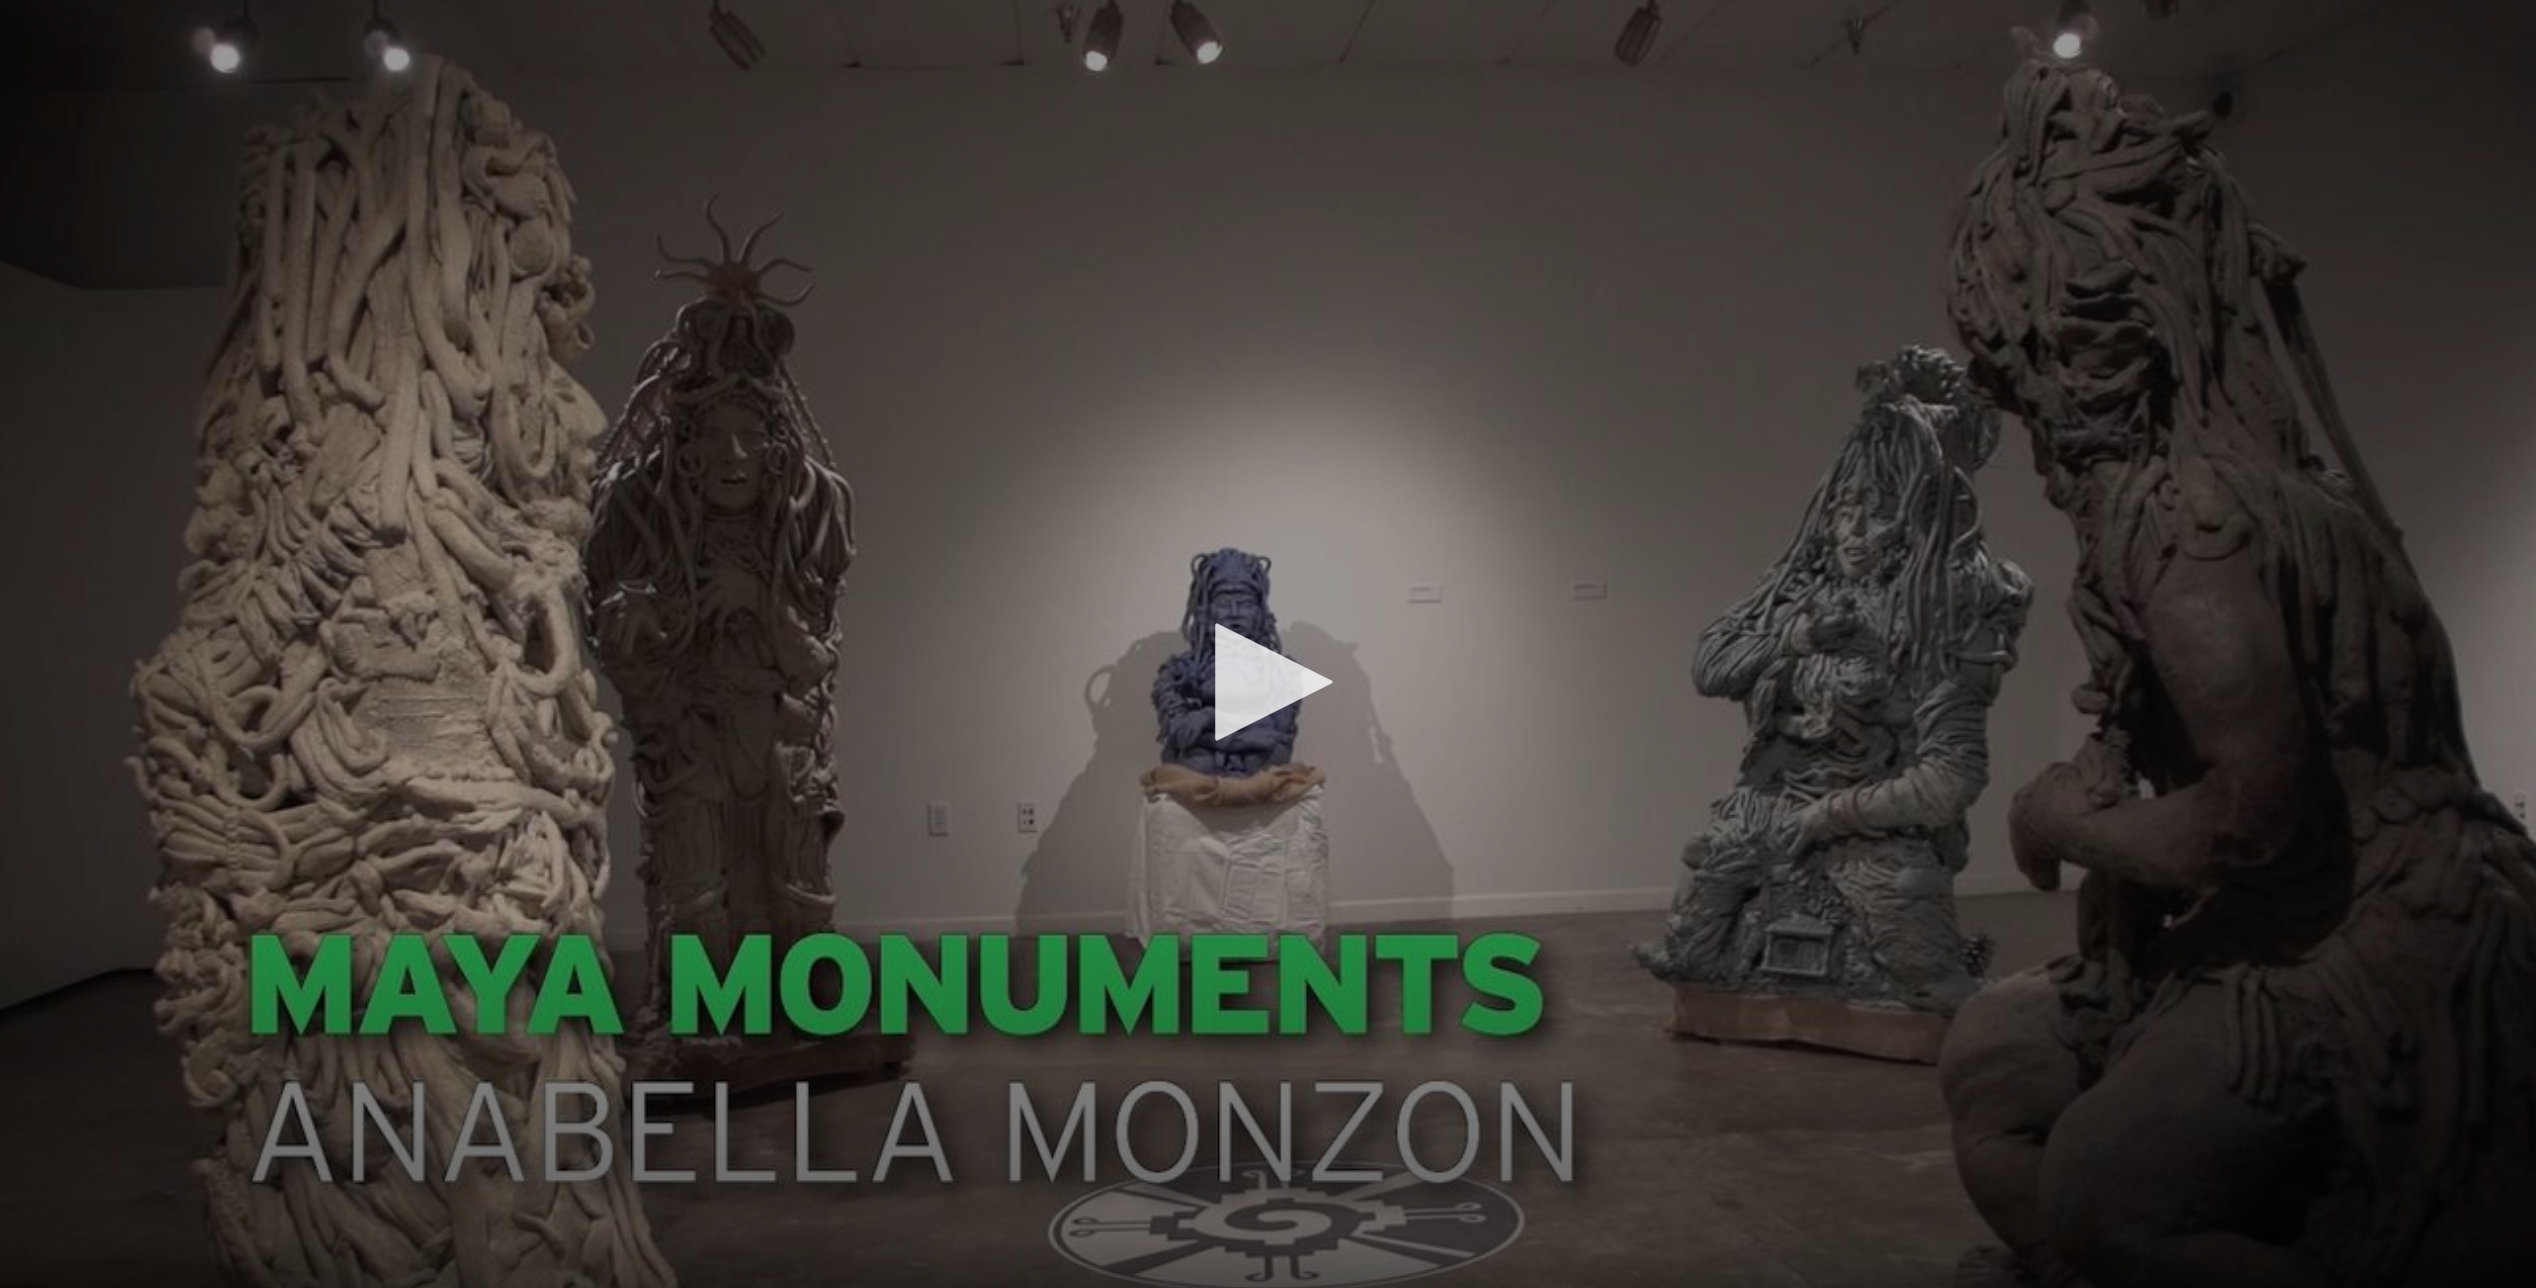 Mayan Monuments - Anabella Monzon PBS video